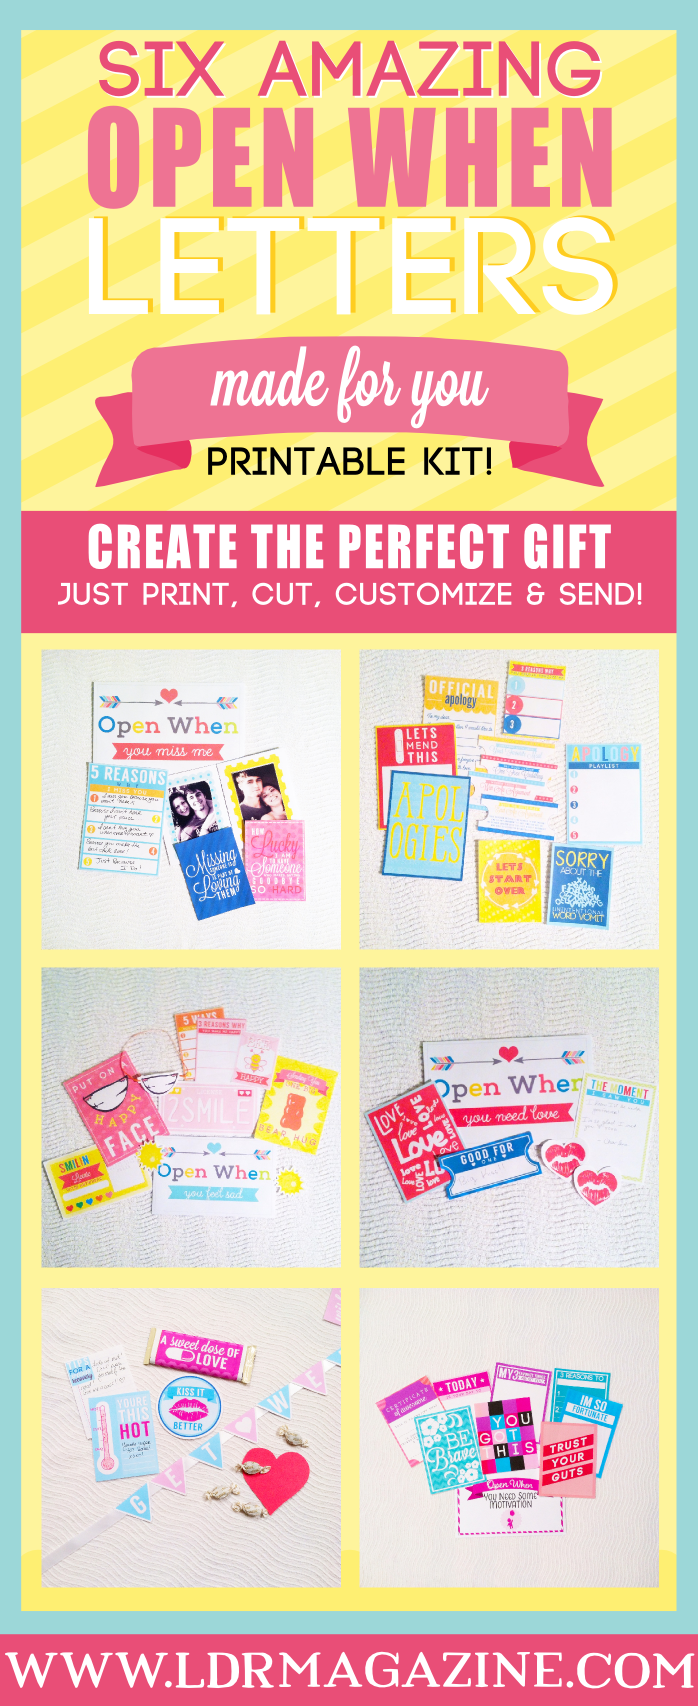 Fill Your Open When Letters with these Awesome Printables